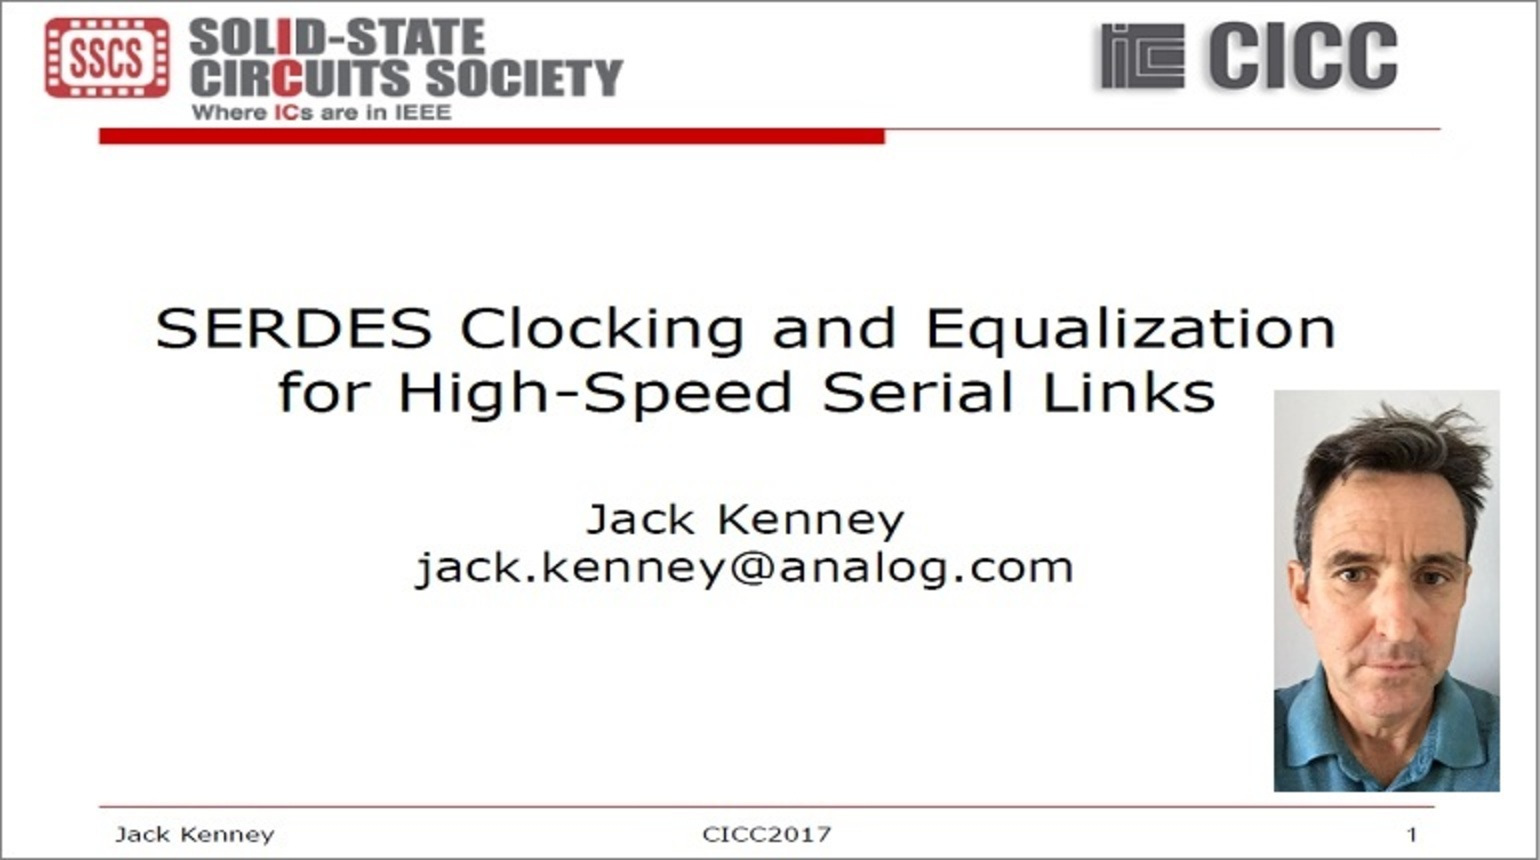 SERDES Clocking and Equalization for High-Speed Serial Links Video